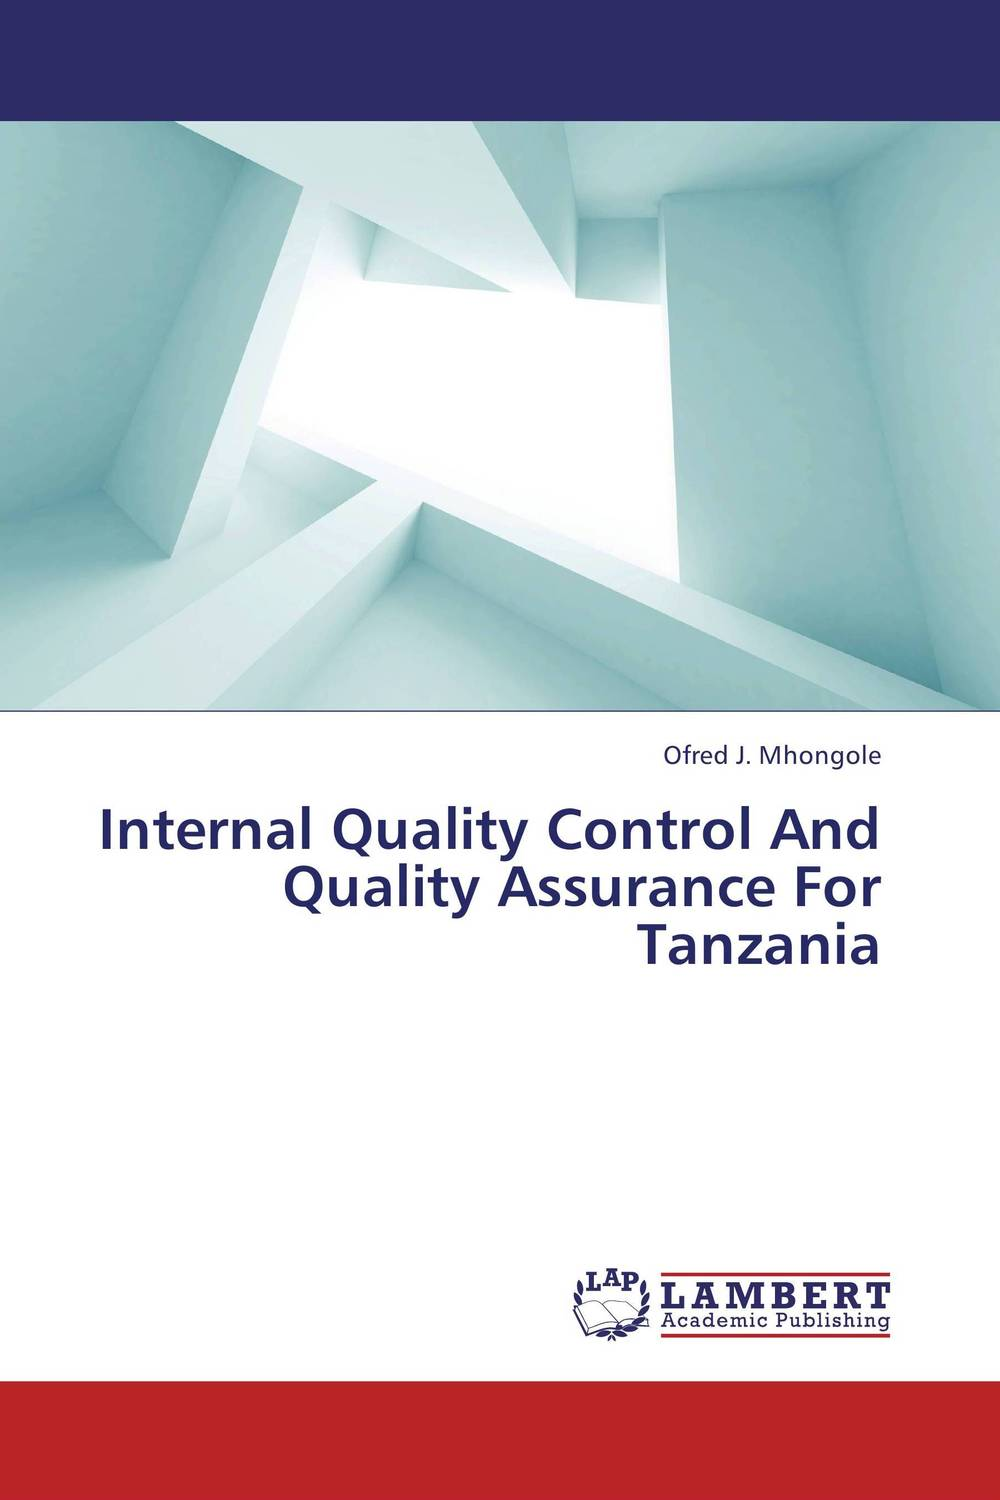 Internal Quality Control And Quality Assurance For Tanzania evaluation of the internal control practices